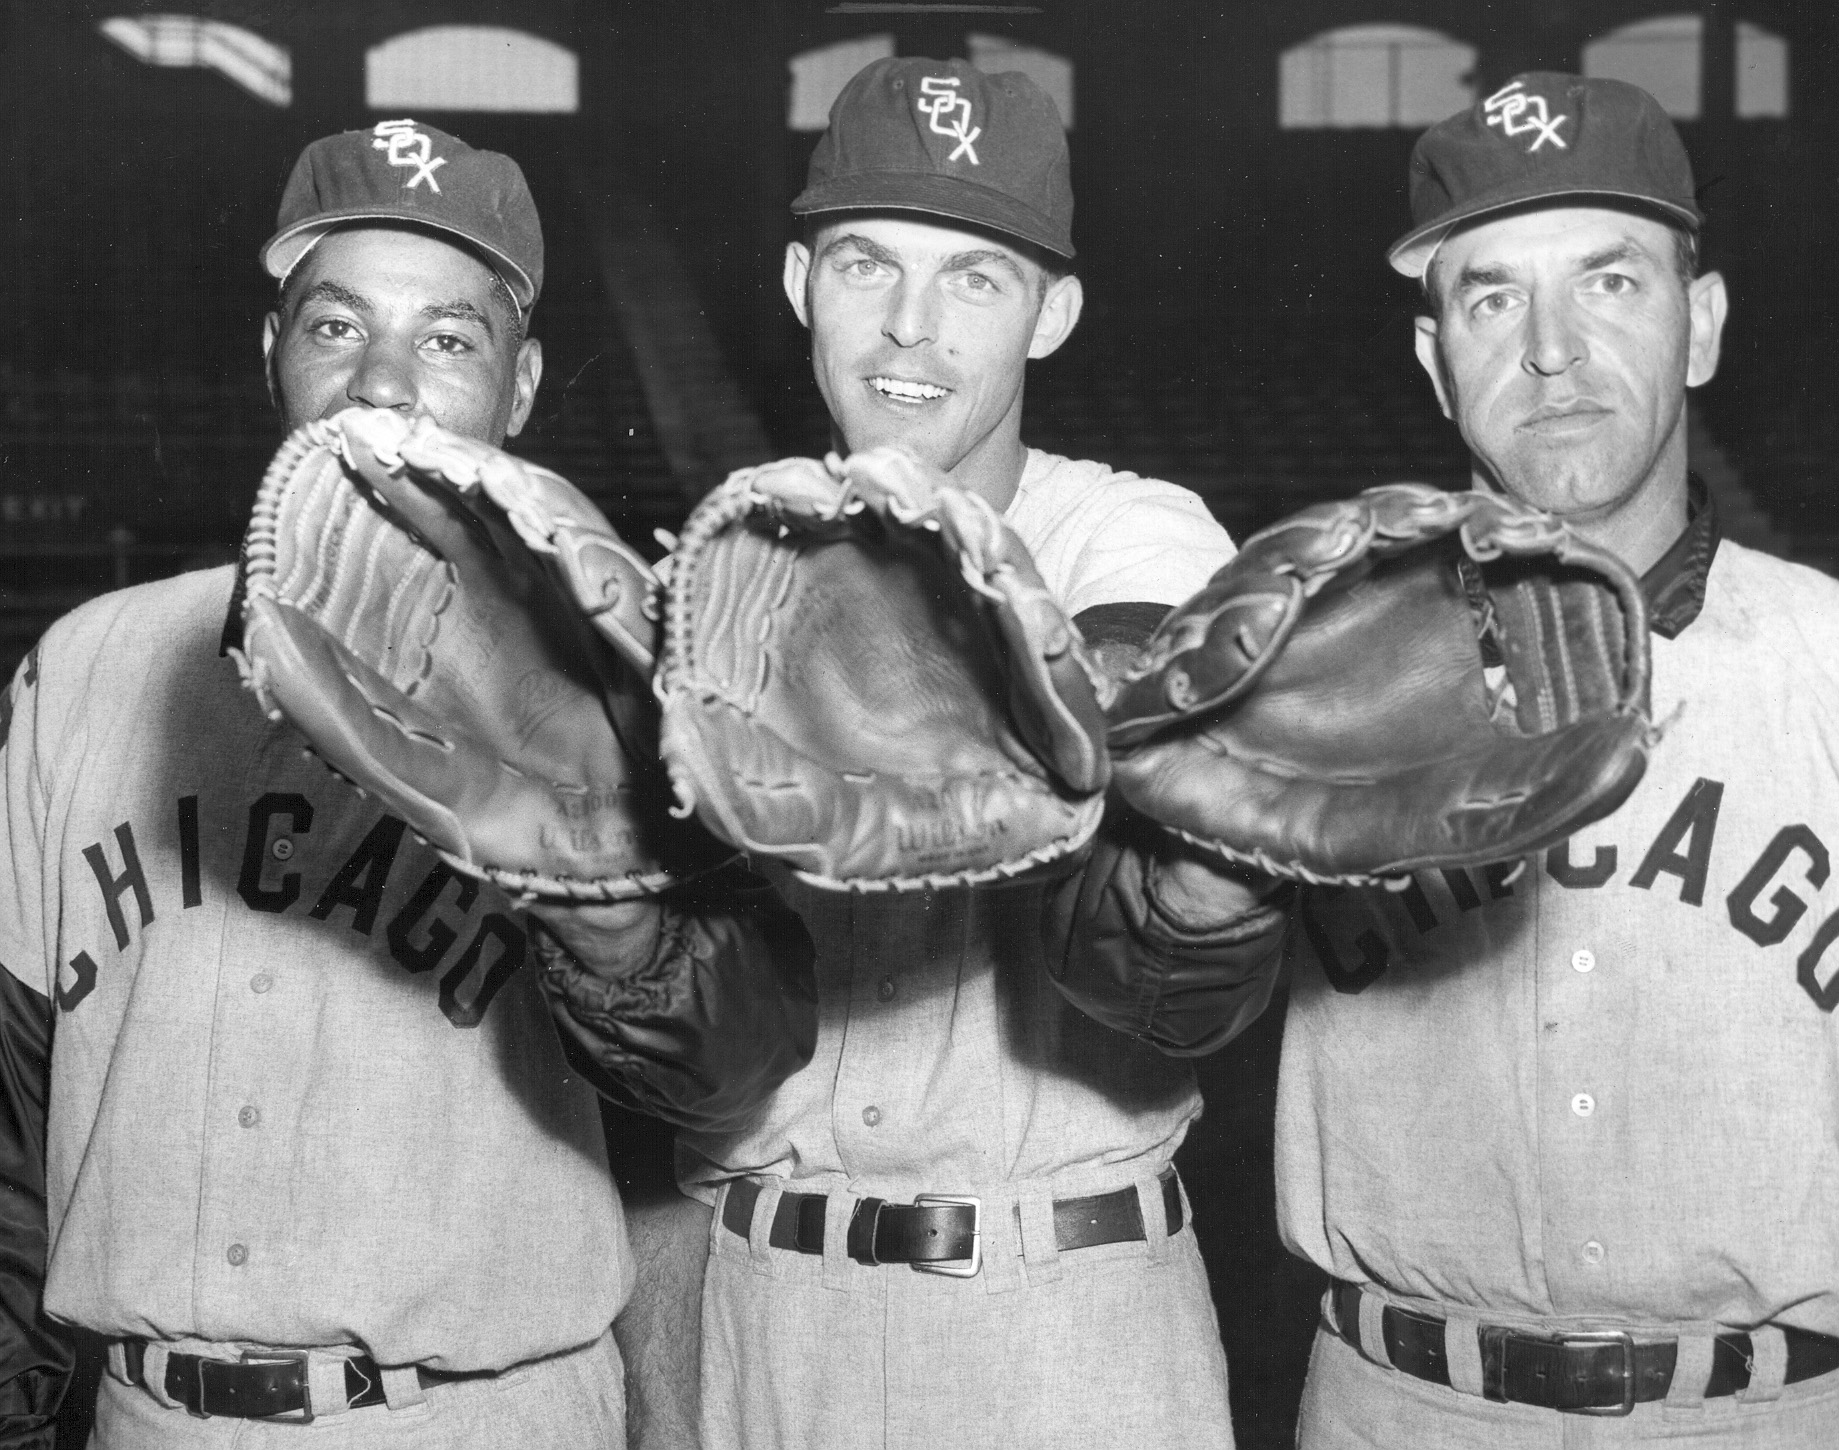 Three White Sox outfielders — Al Smith, Jim Landis and Jim Rivera —pose for a photo, left to right, at Comiskey Park in 1959.